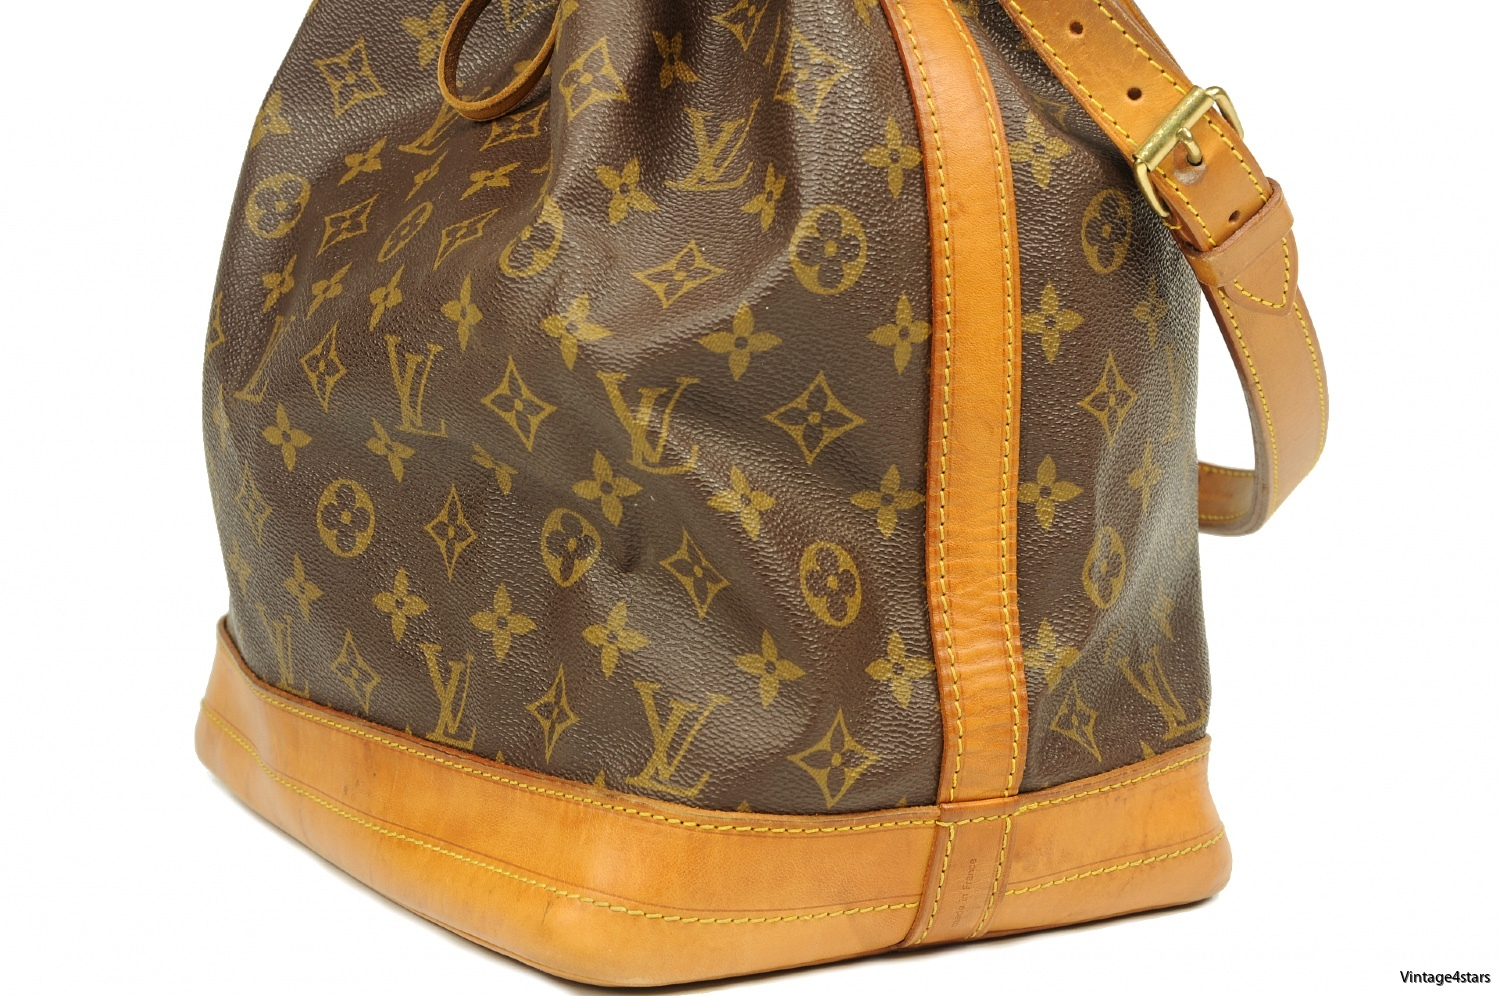 LOUIS VUITTON NOÉ 2-2